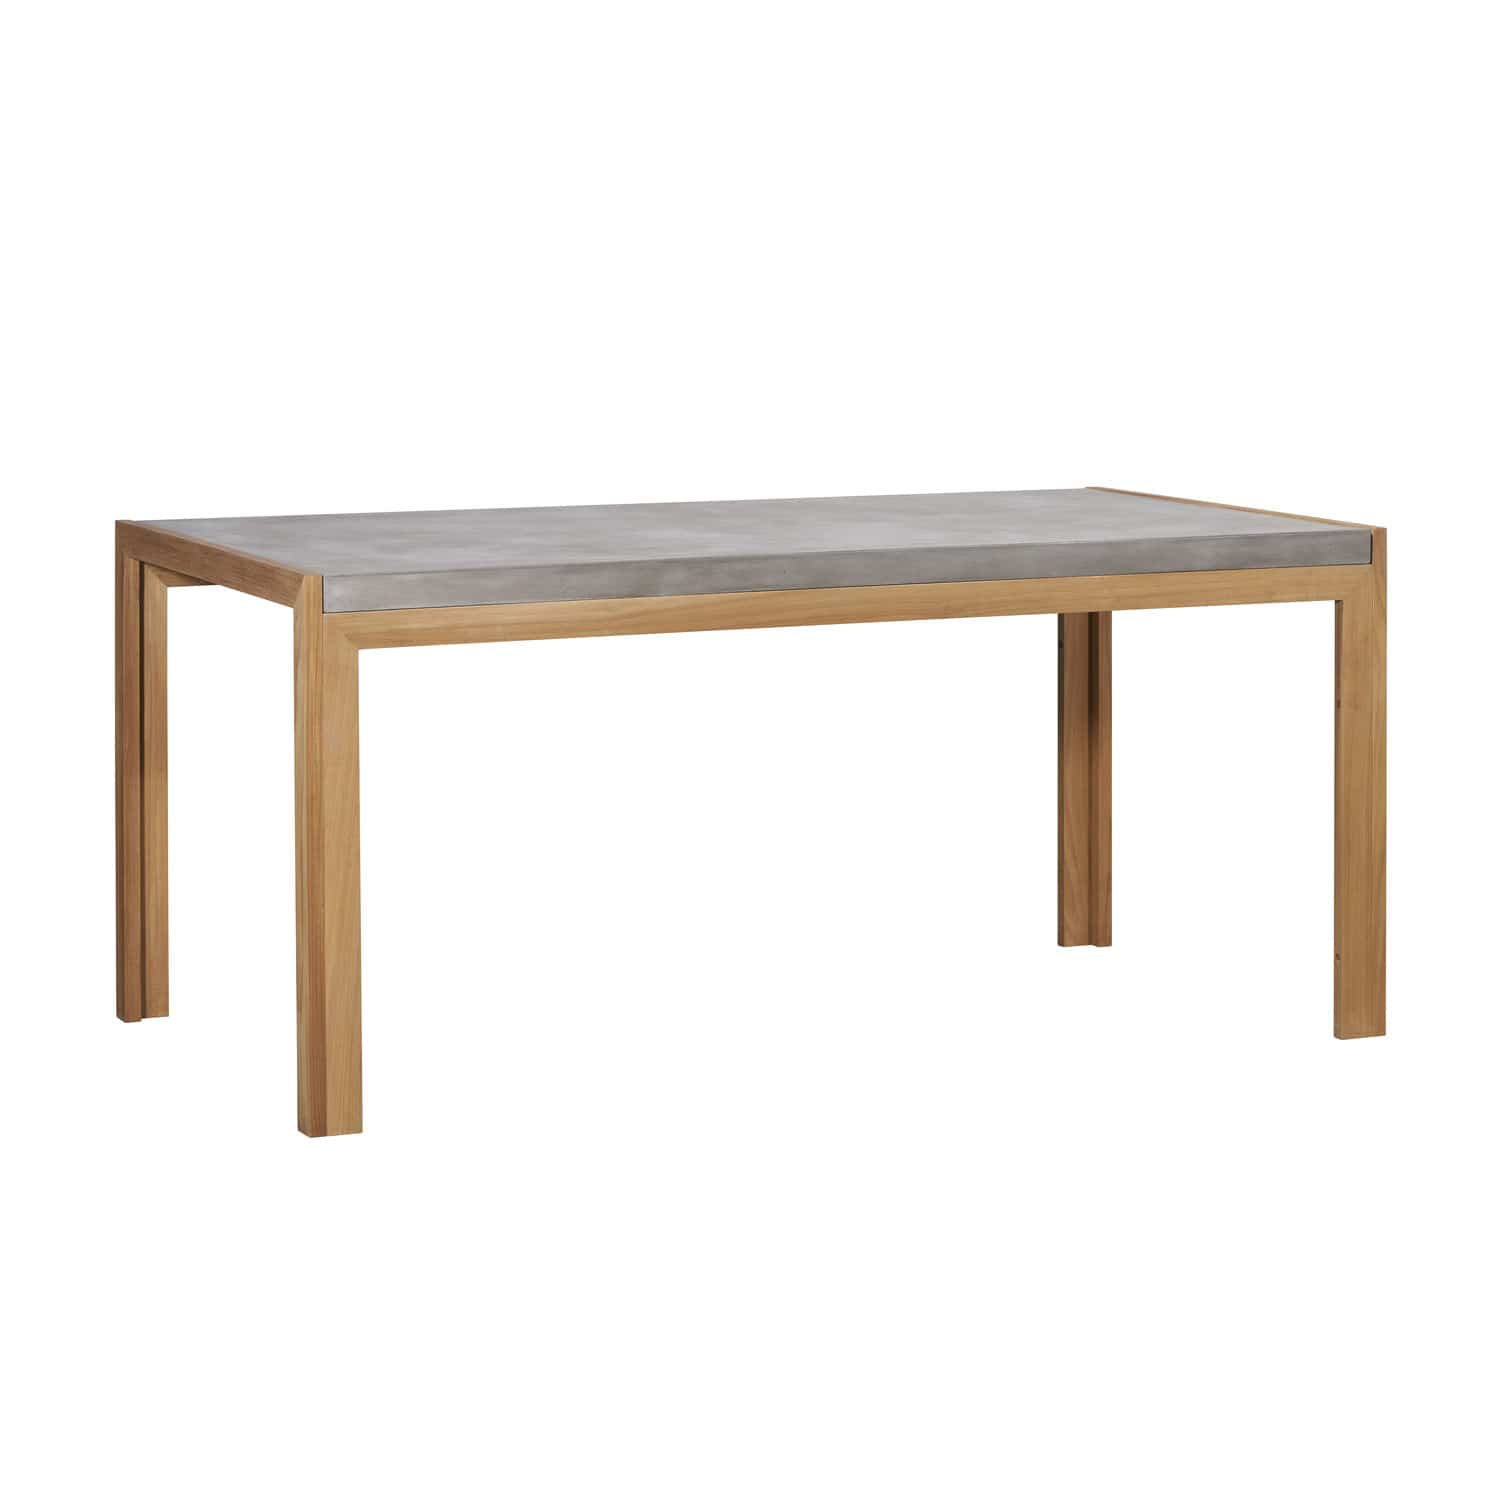 Scandinavian Design Dining Table Teak Concrete Rectangular